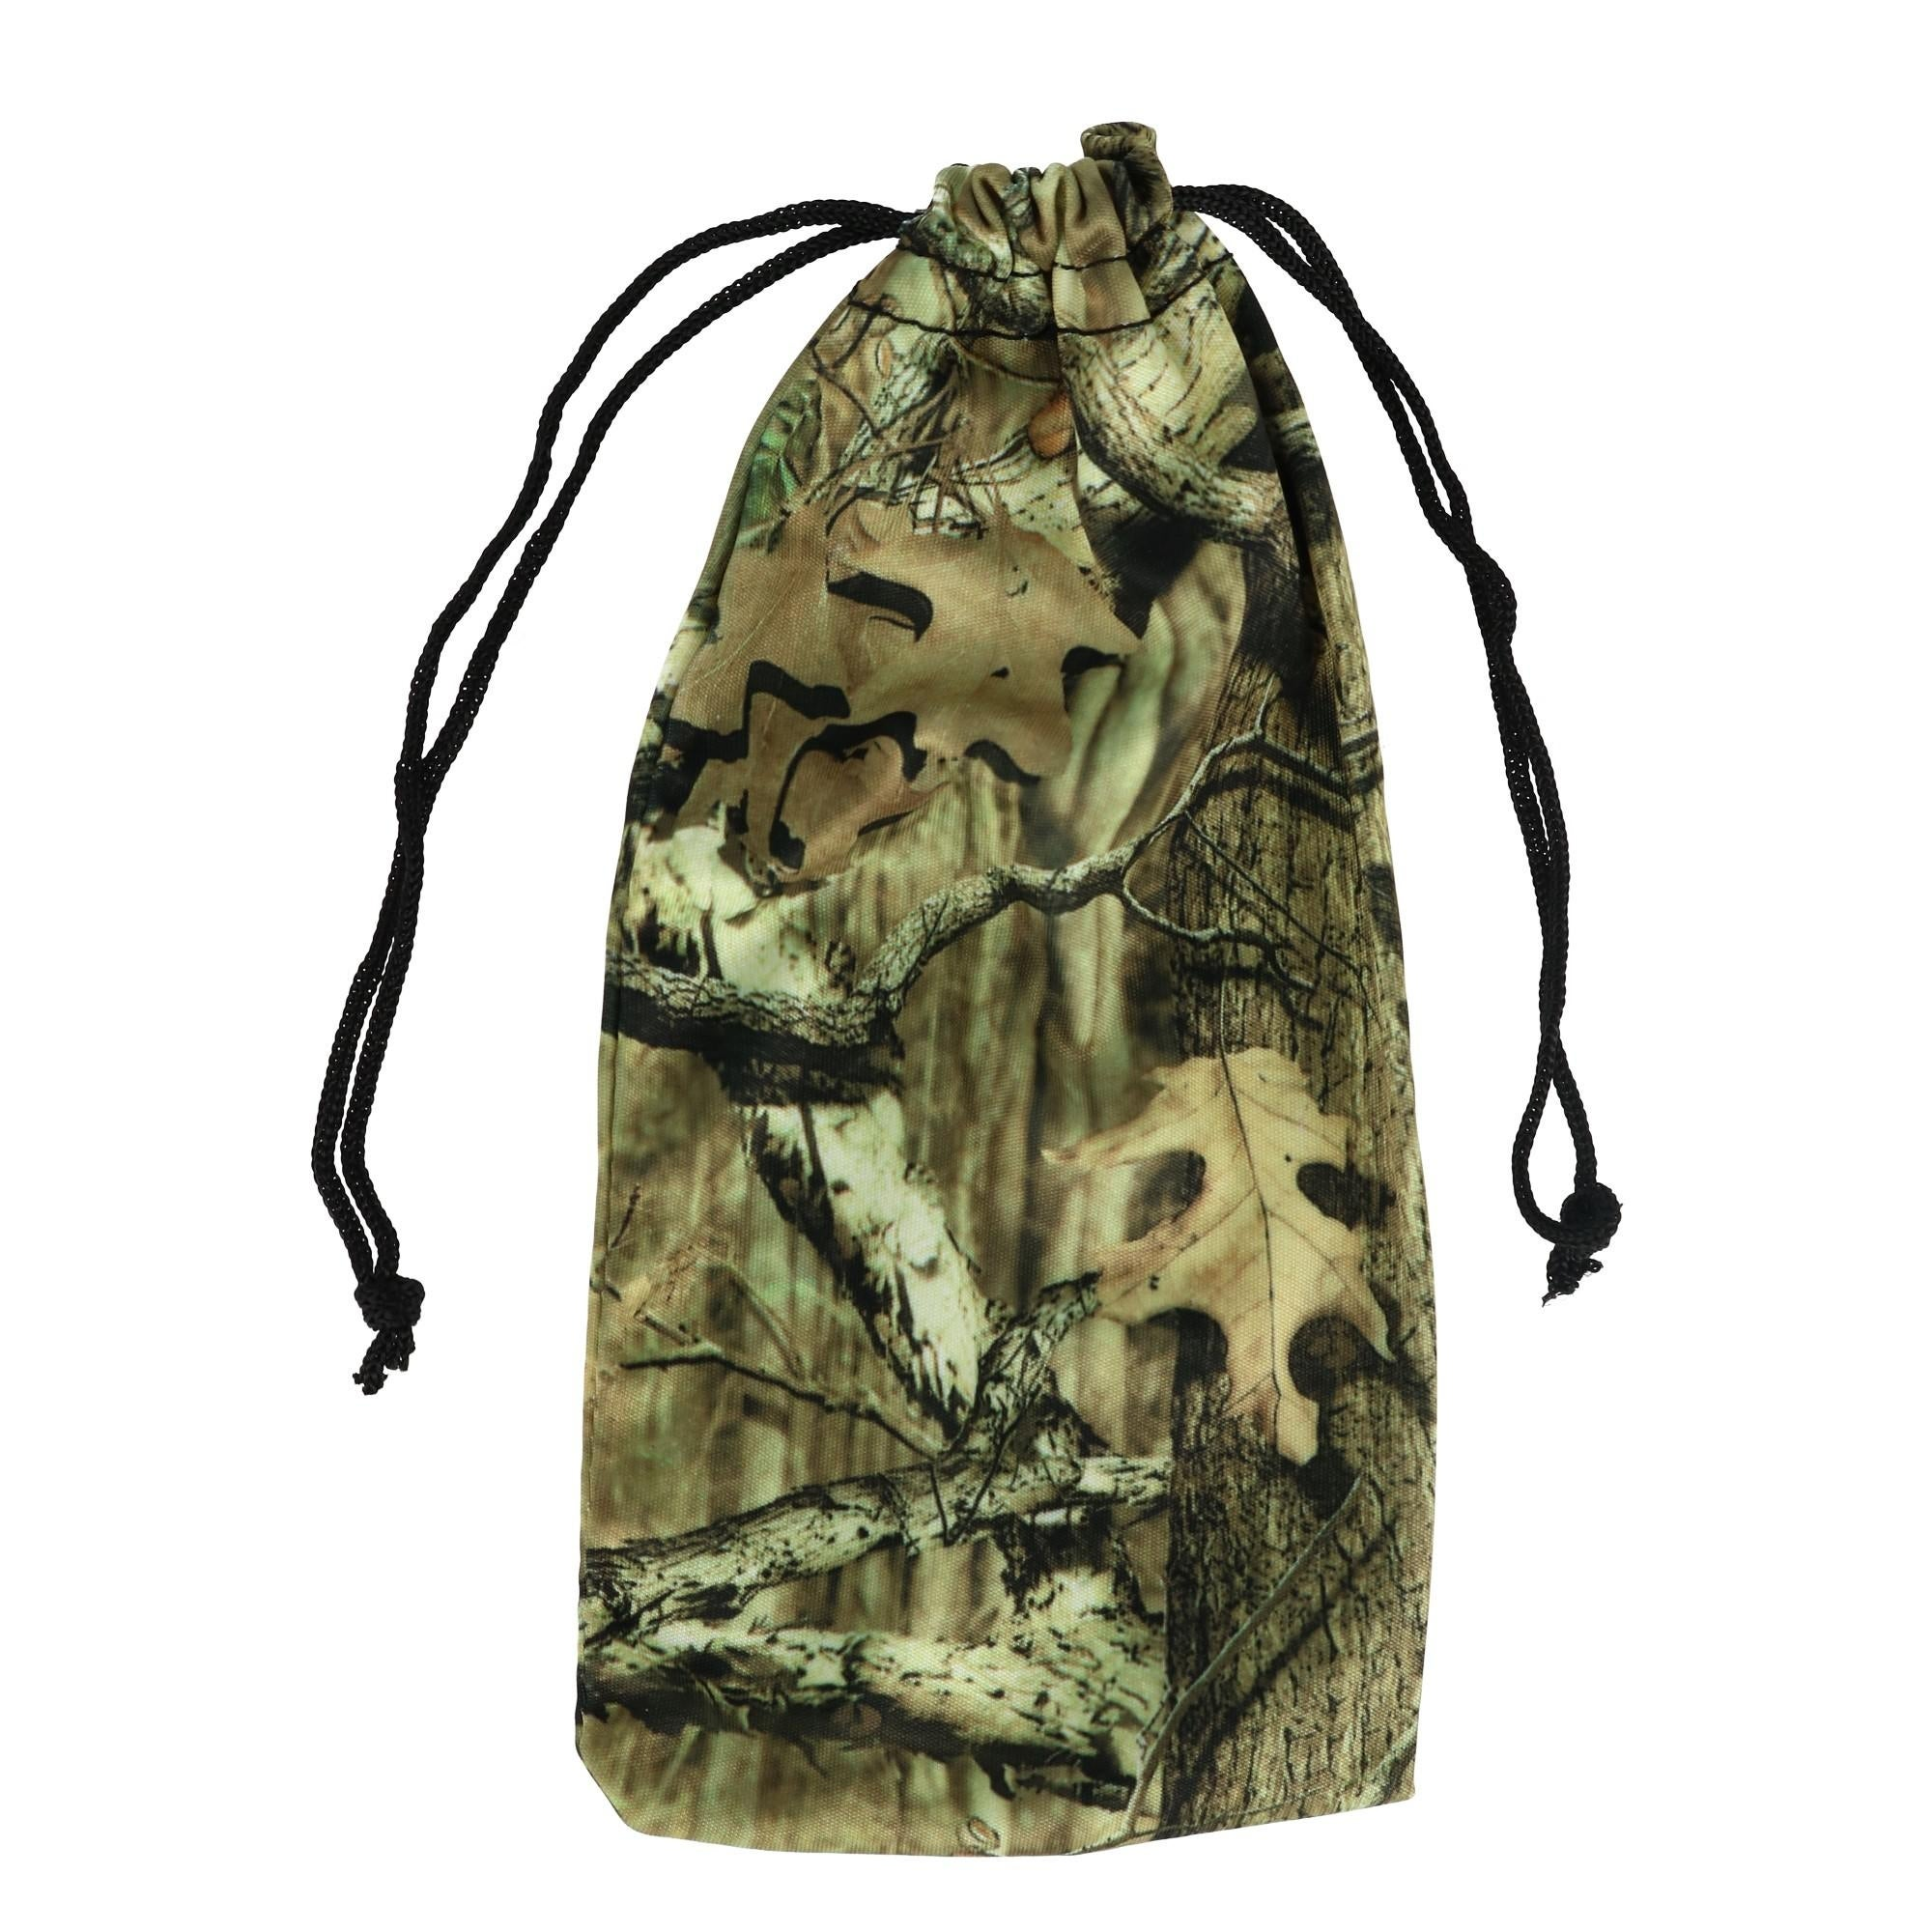 CTM Camouflage Print Glasses Case Pouch with Drawstring Closure